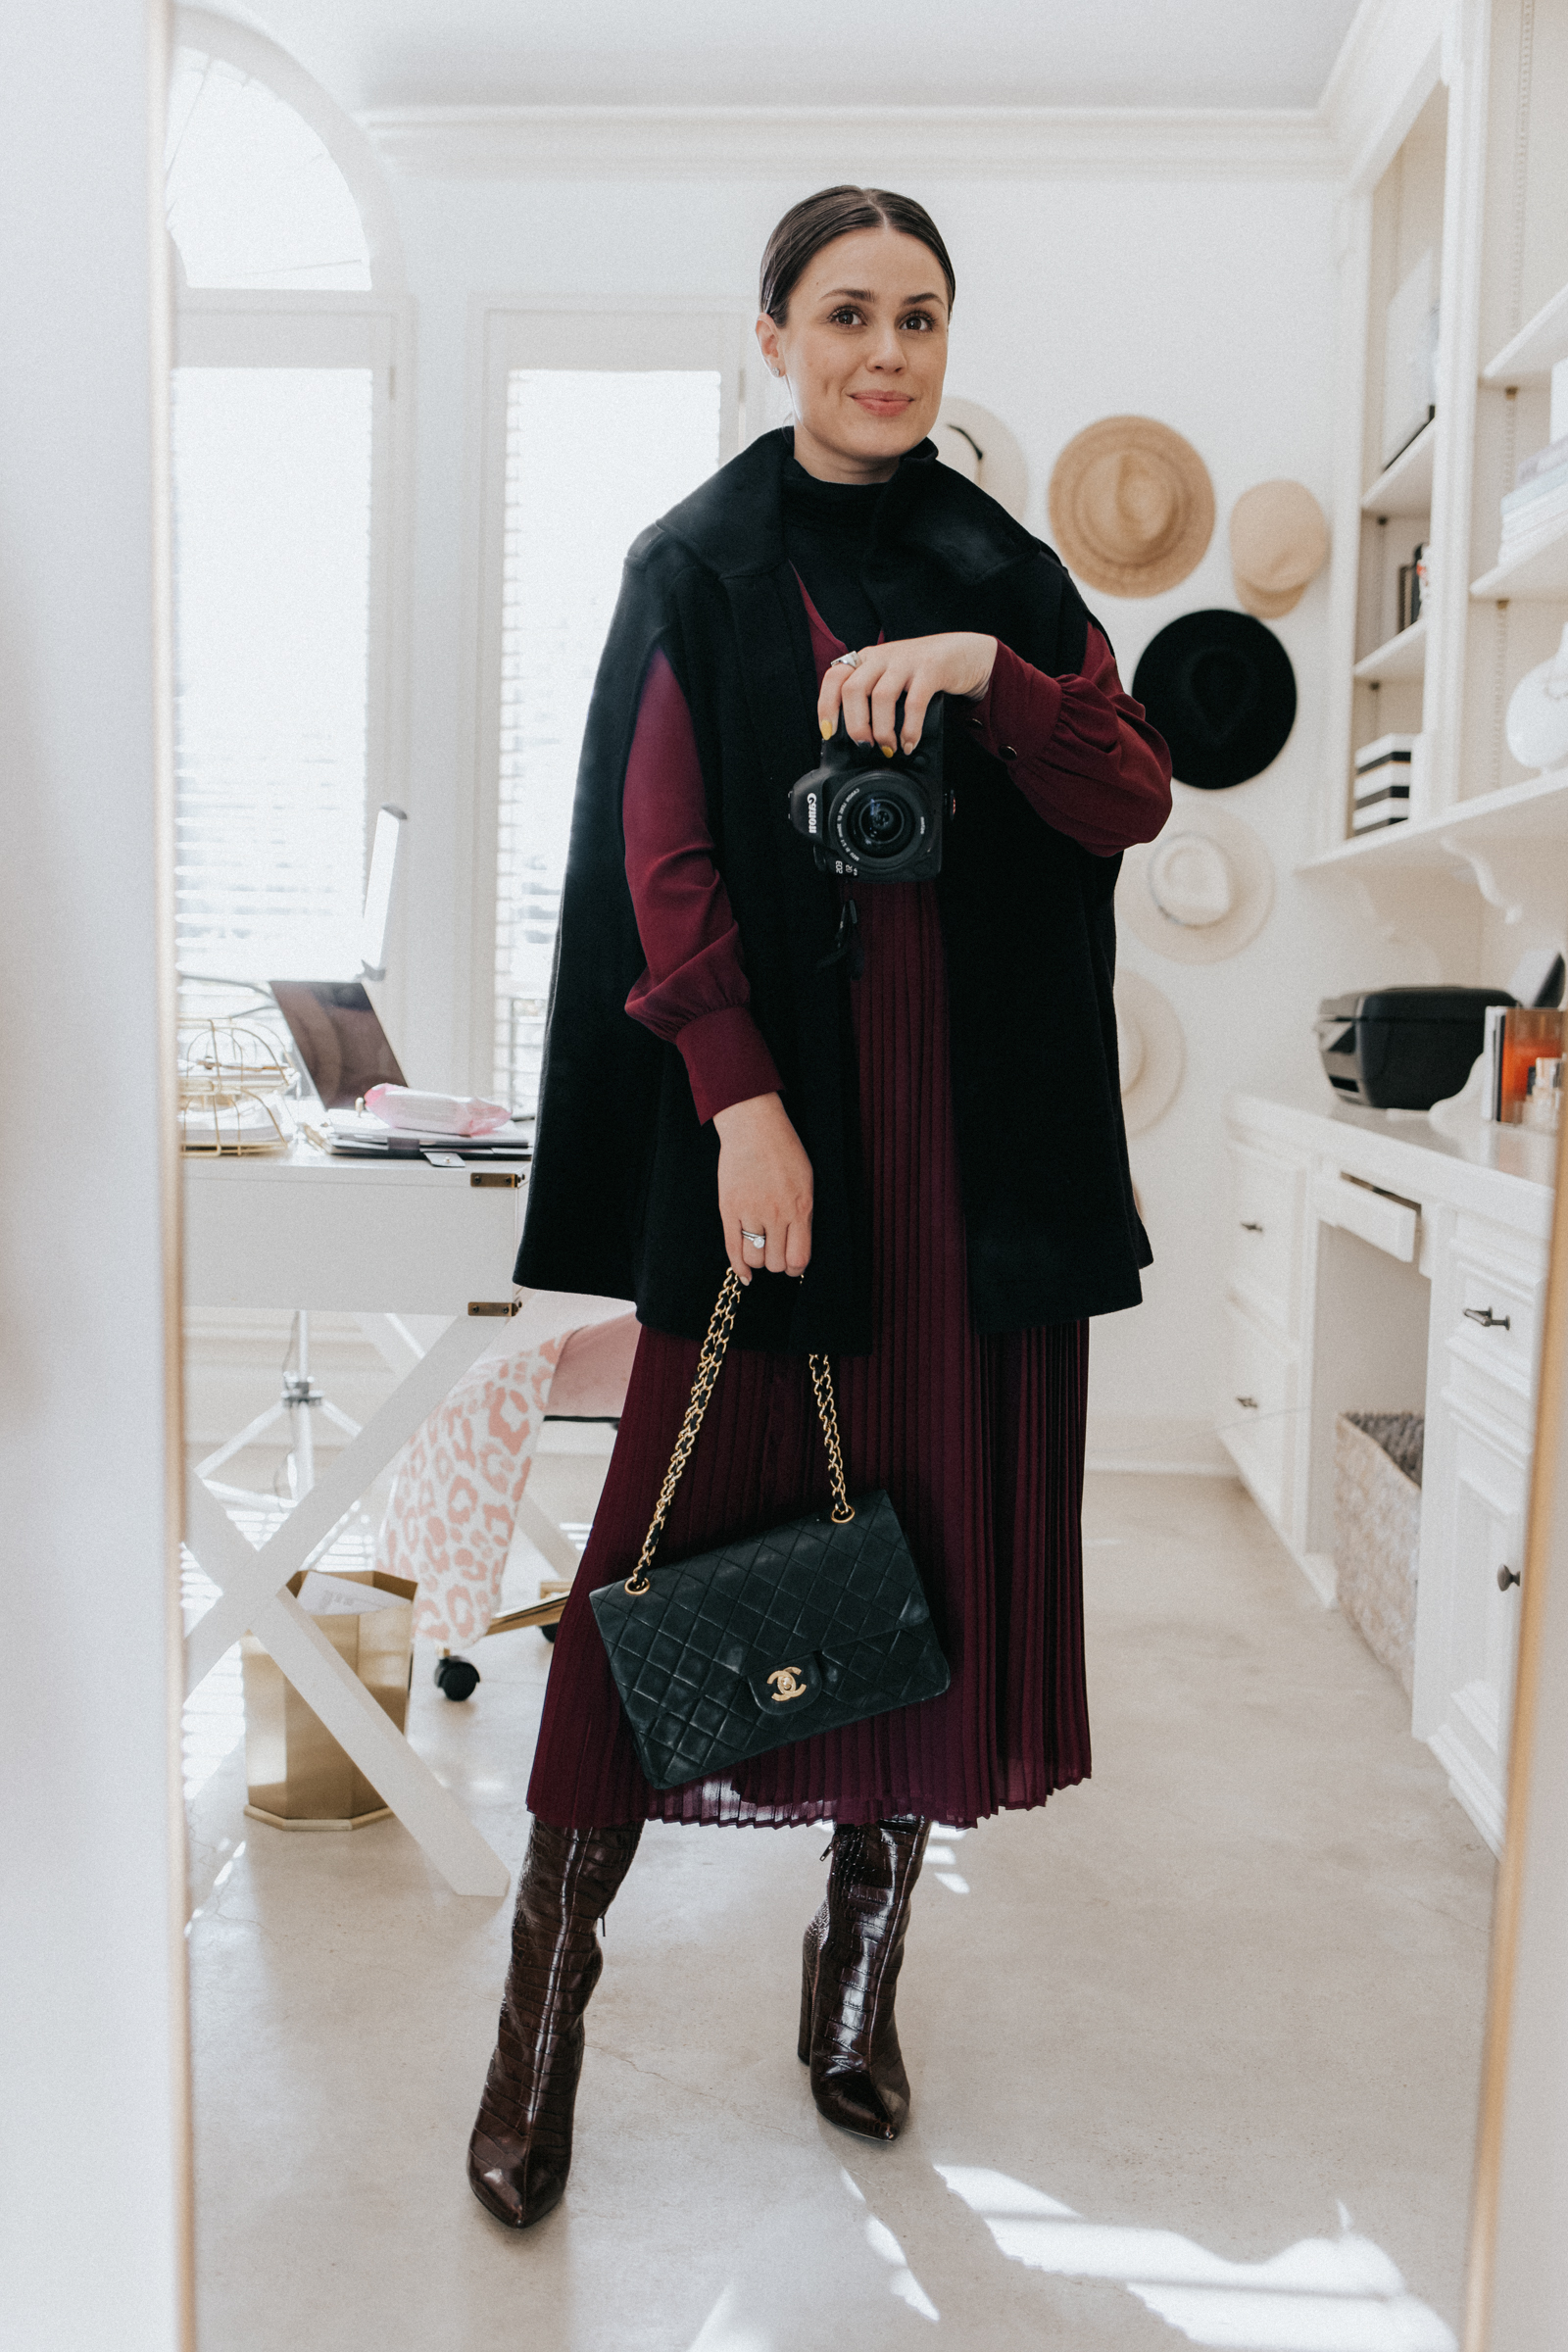 elly brown styles a winter cape coat from zara with a pleated dress and knee high boots